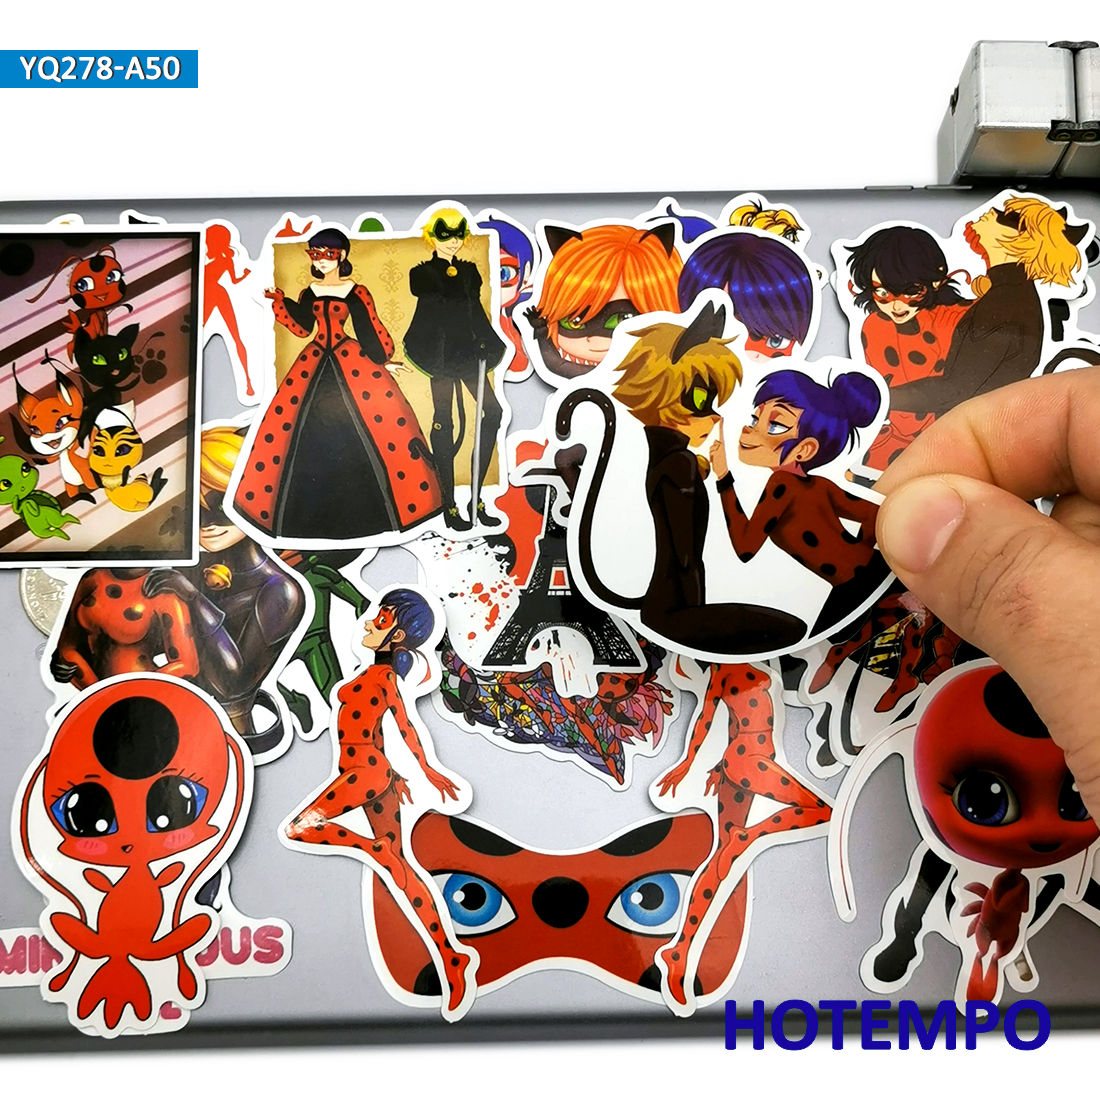 50pcs Cute Ladybug Girl Cat Noir Anime Stickers Toys For Girls Kids Scrapbook Mobile Phone Laptop Suitcase Cartoon Decal Sticker